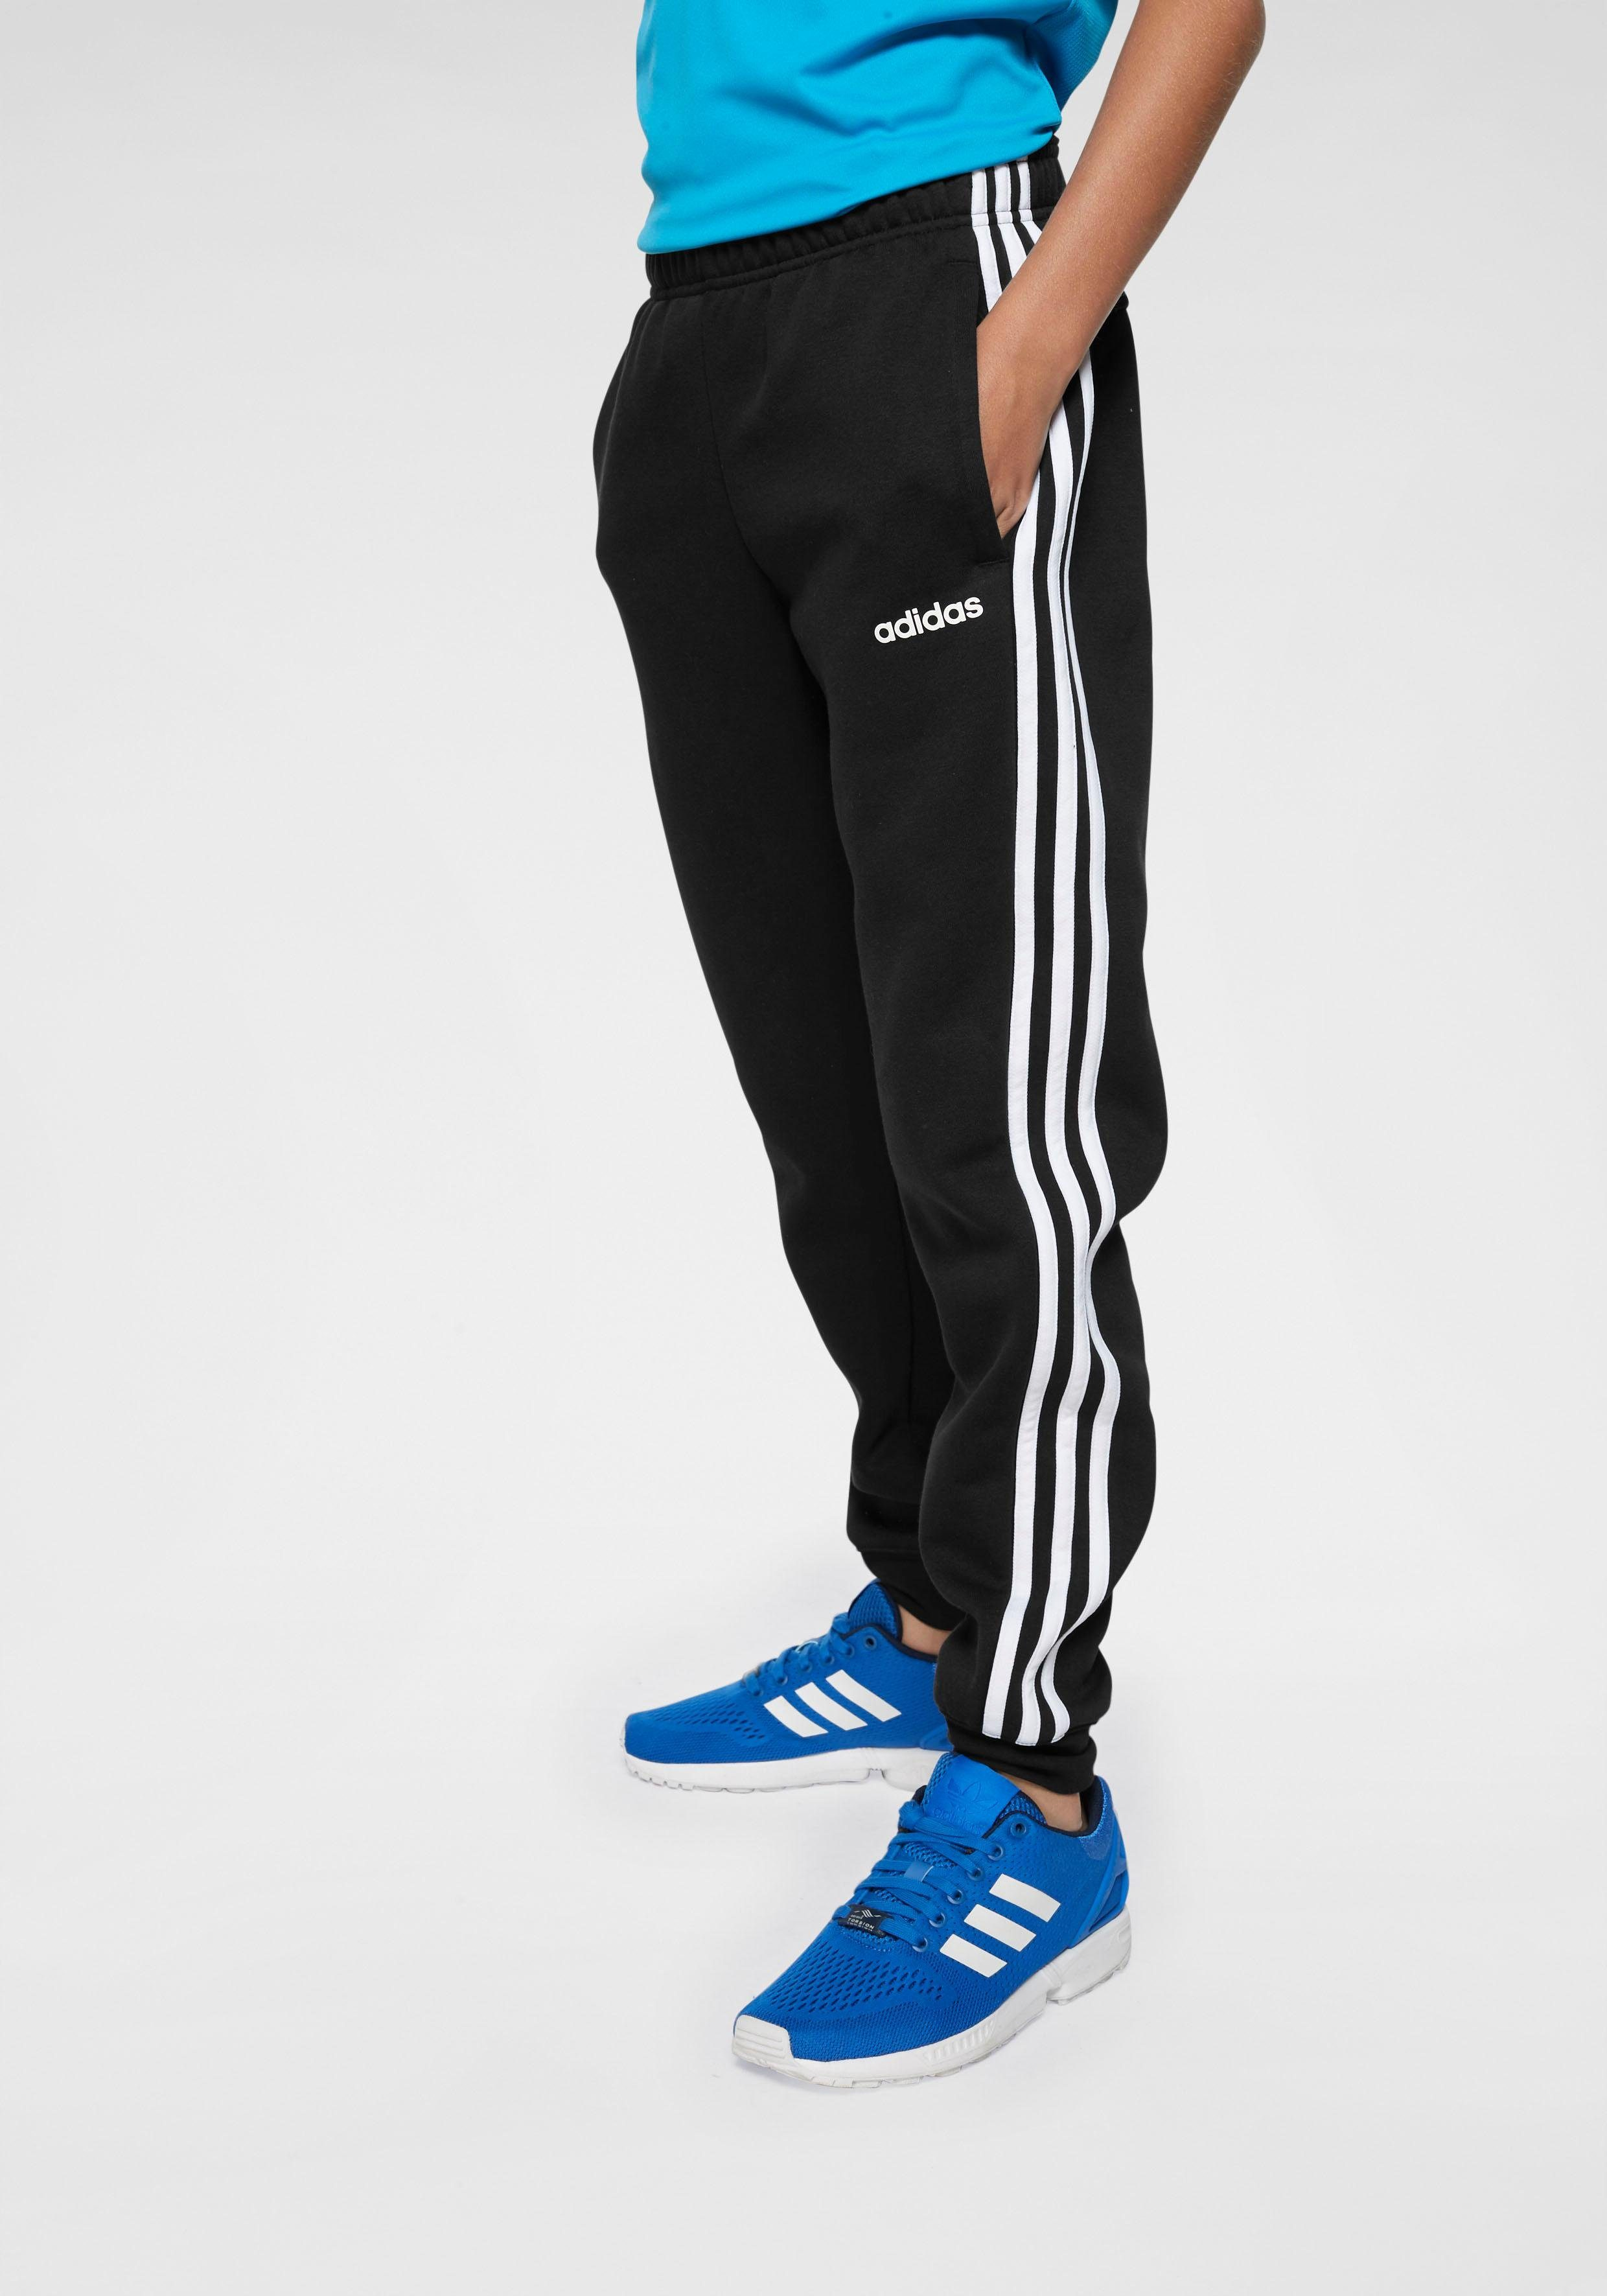 ADIDAS TRAININGSHOSE JOGGINGHOSE BLAU Jungs Gr. 152***TOP***